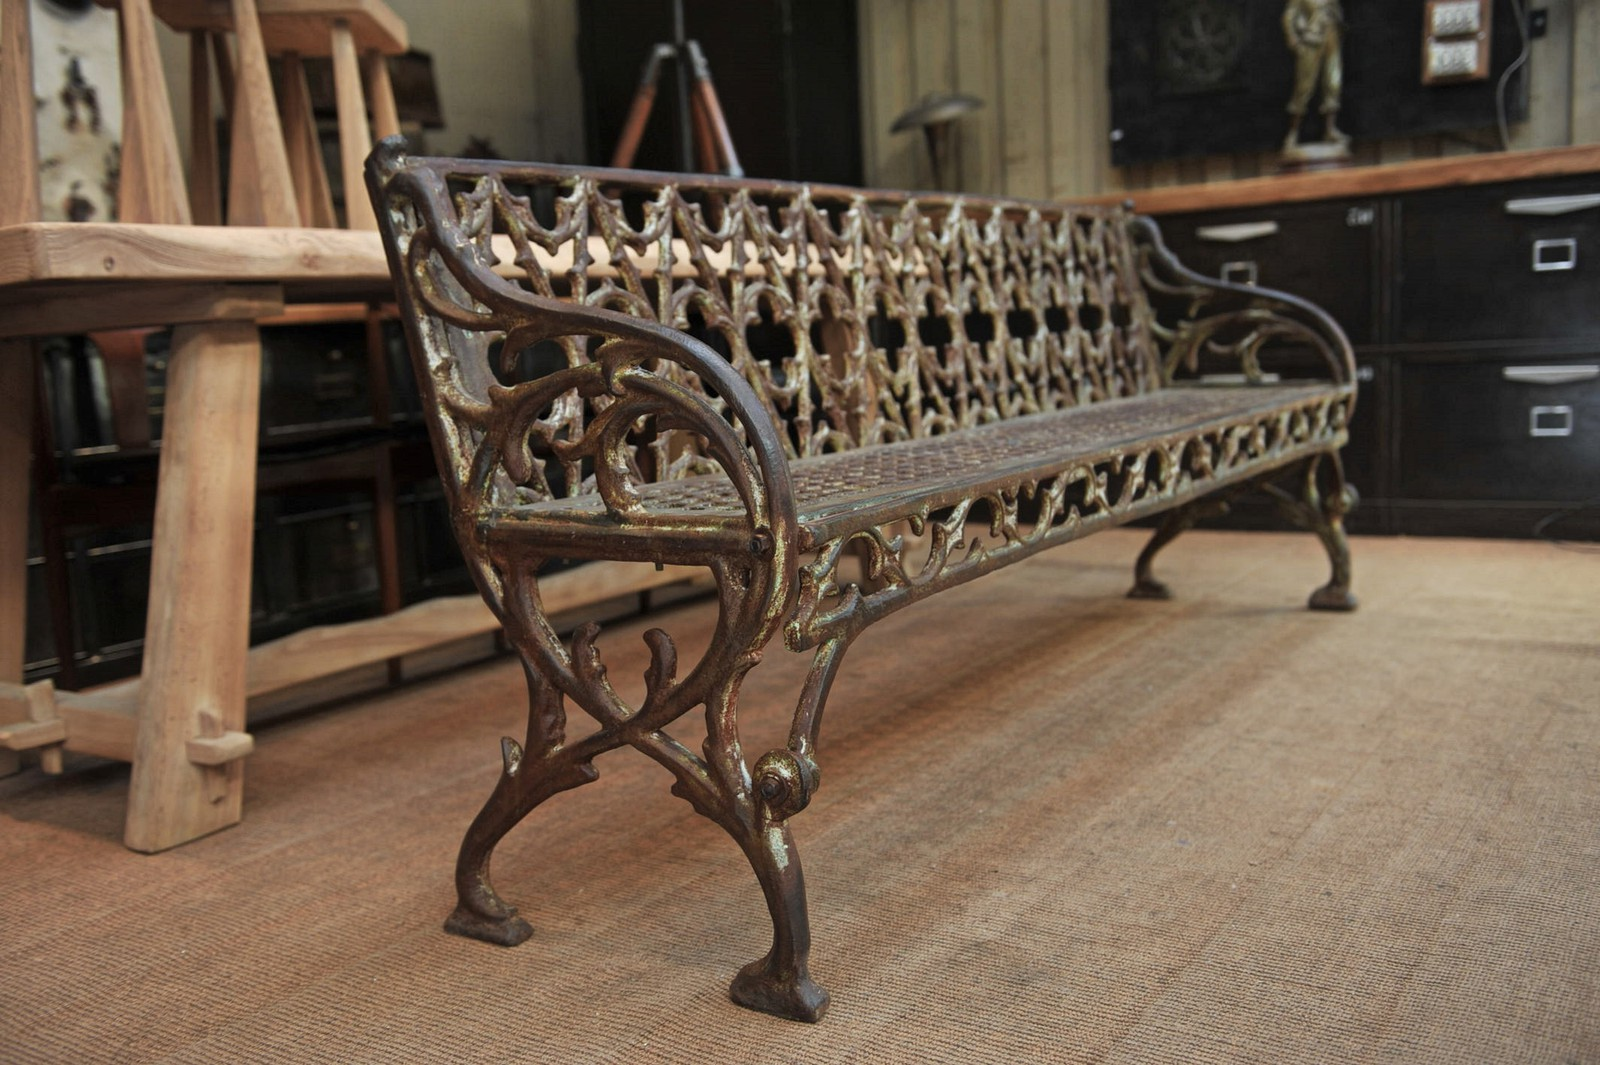 Antique art nouveau garden bench